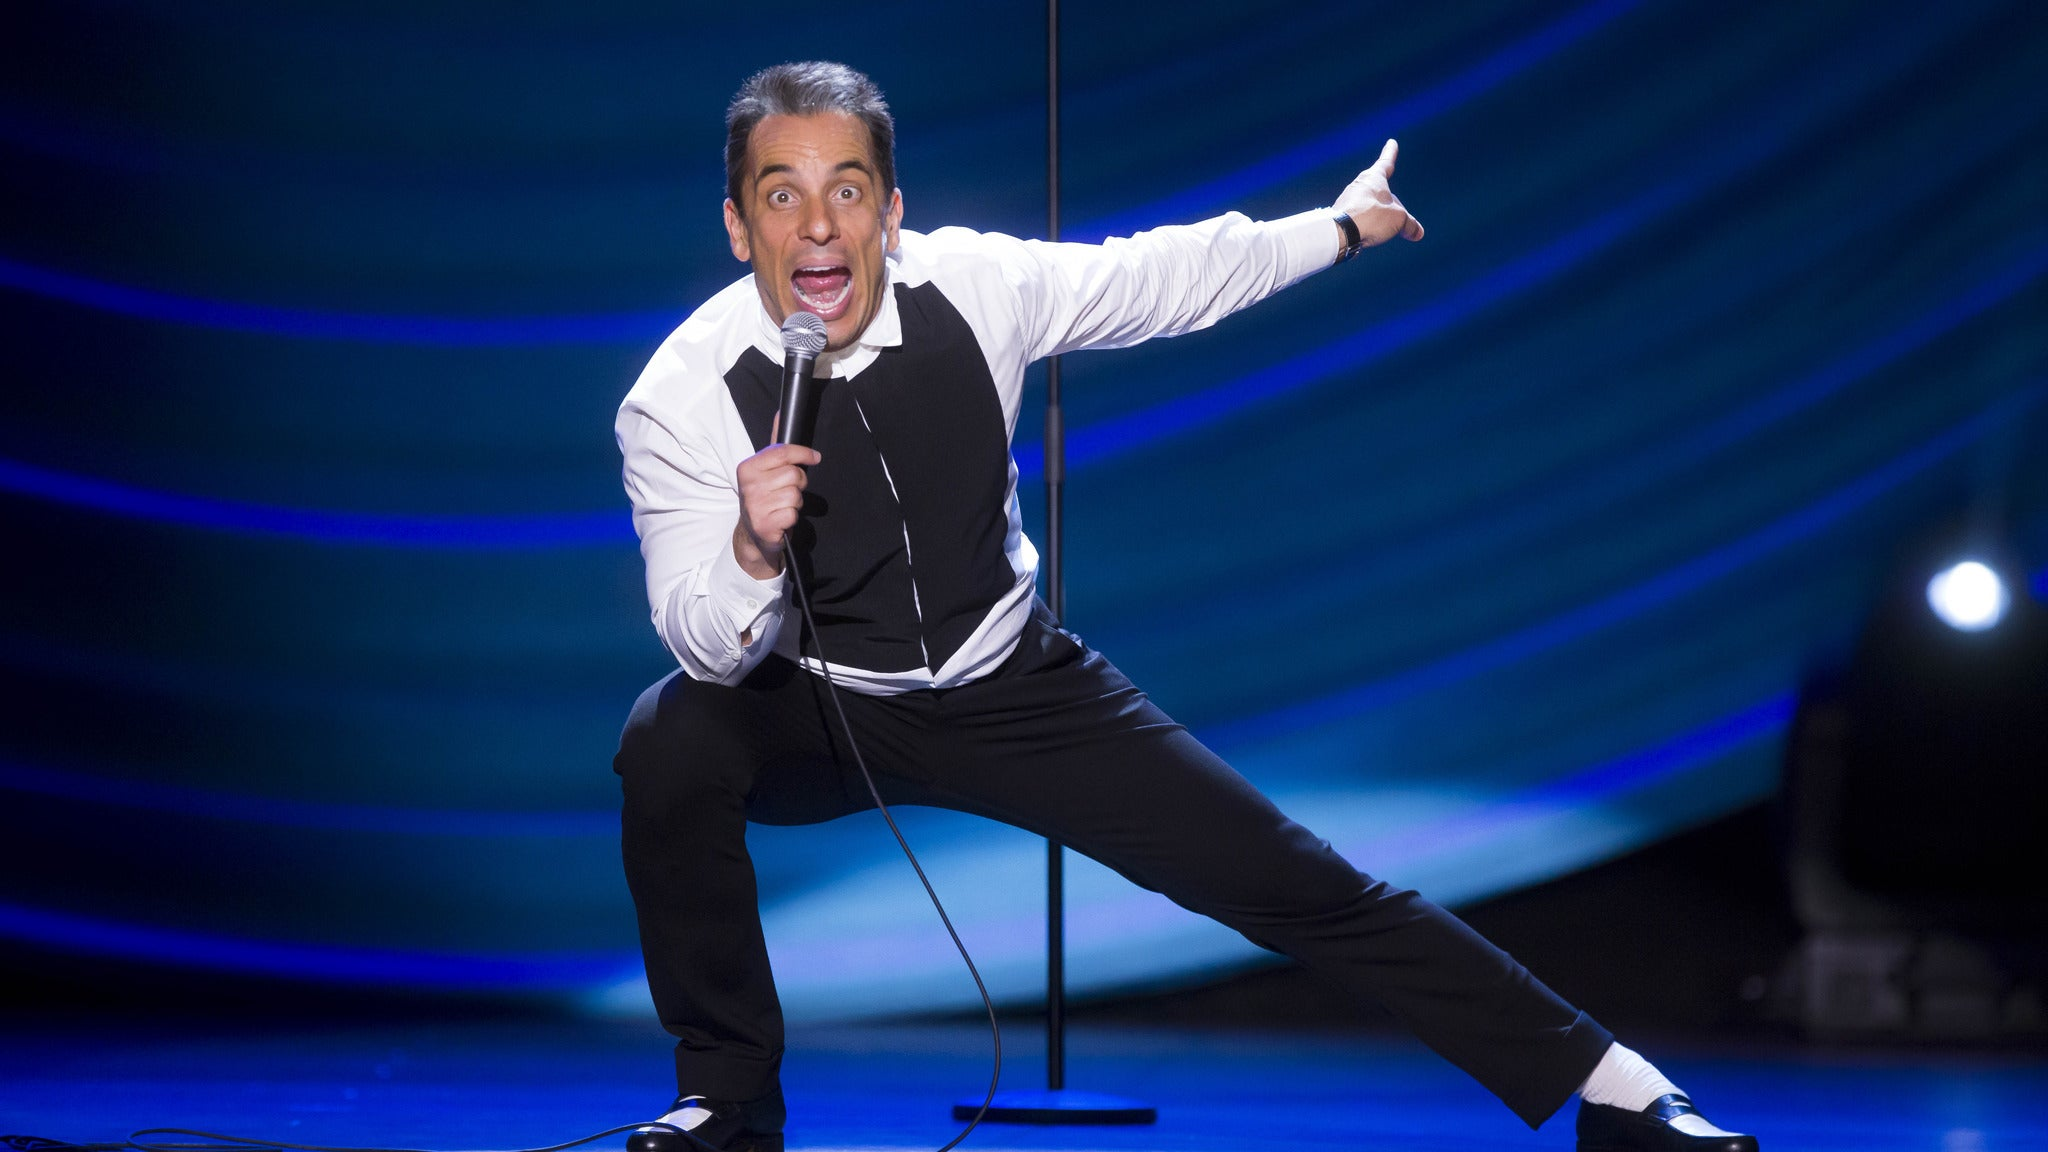 SEBASTIAN MANISCALCO - WHY WOULD YOU DO THAT